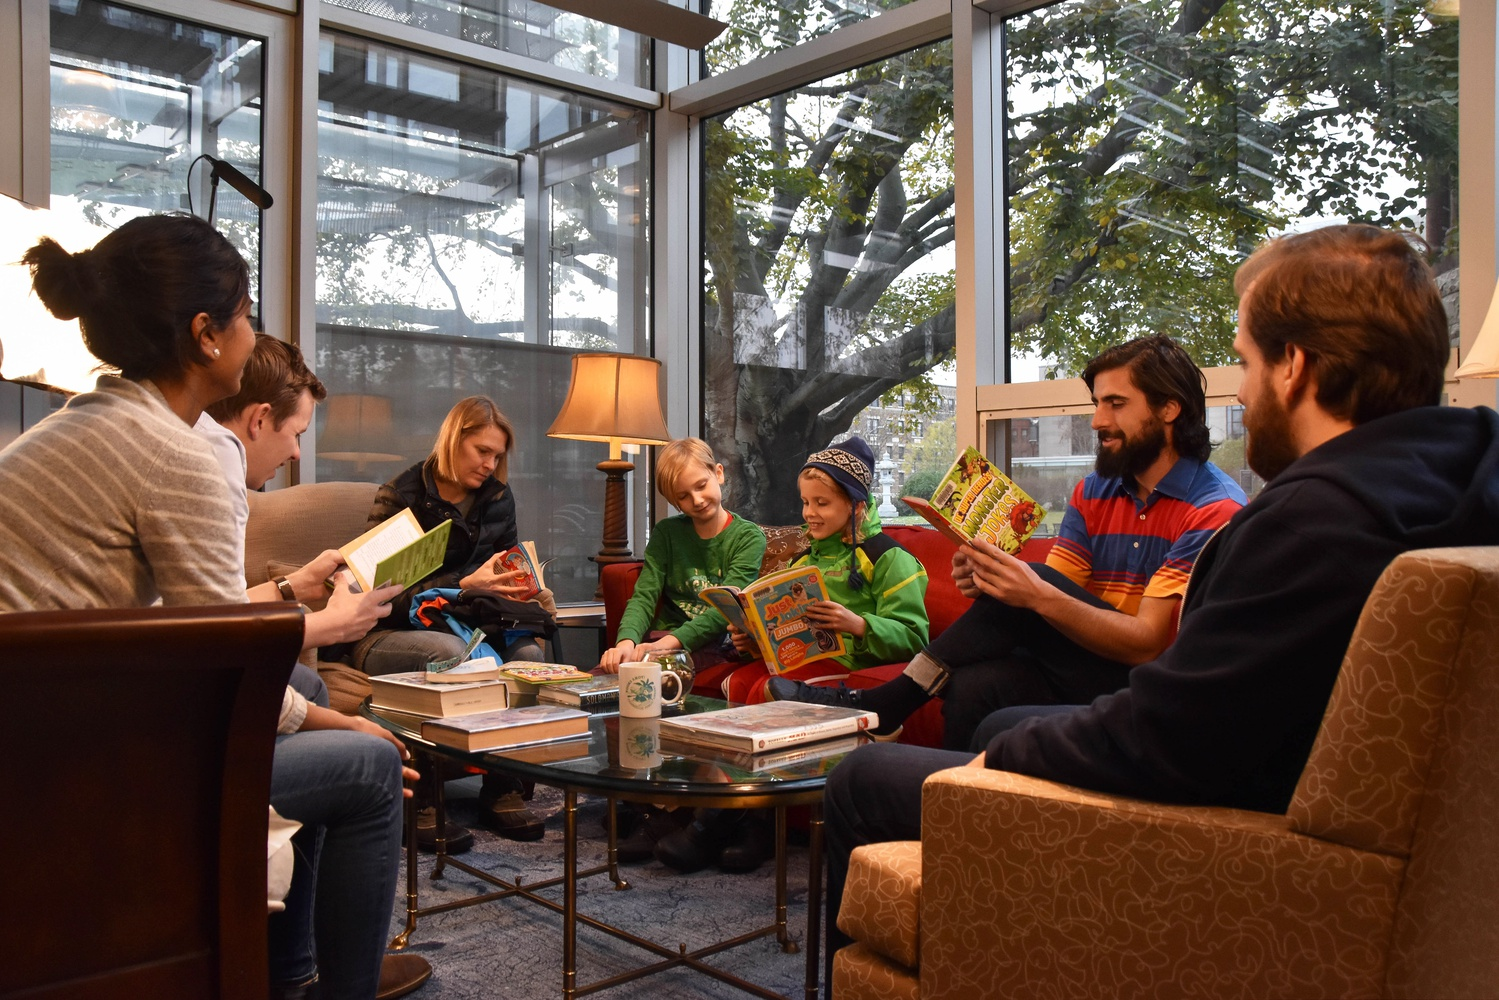 Cambridge residents try out The Laughing Room in the lobby of the Cambridge Public Library.